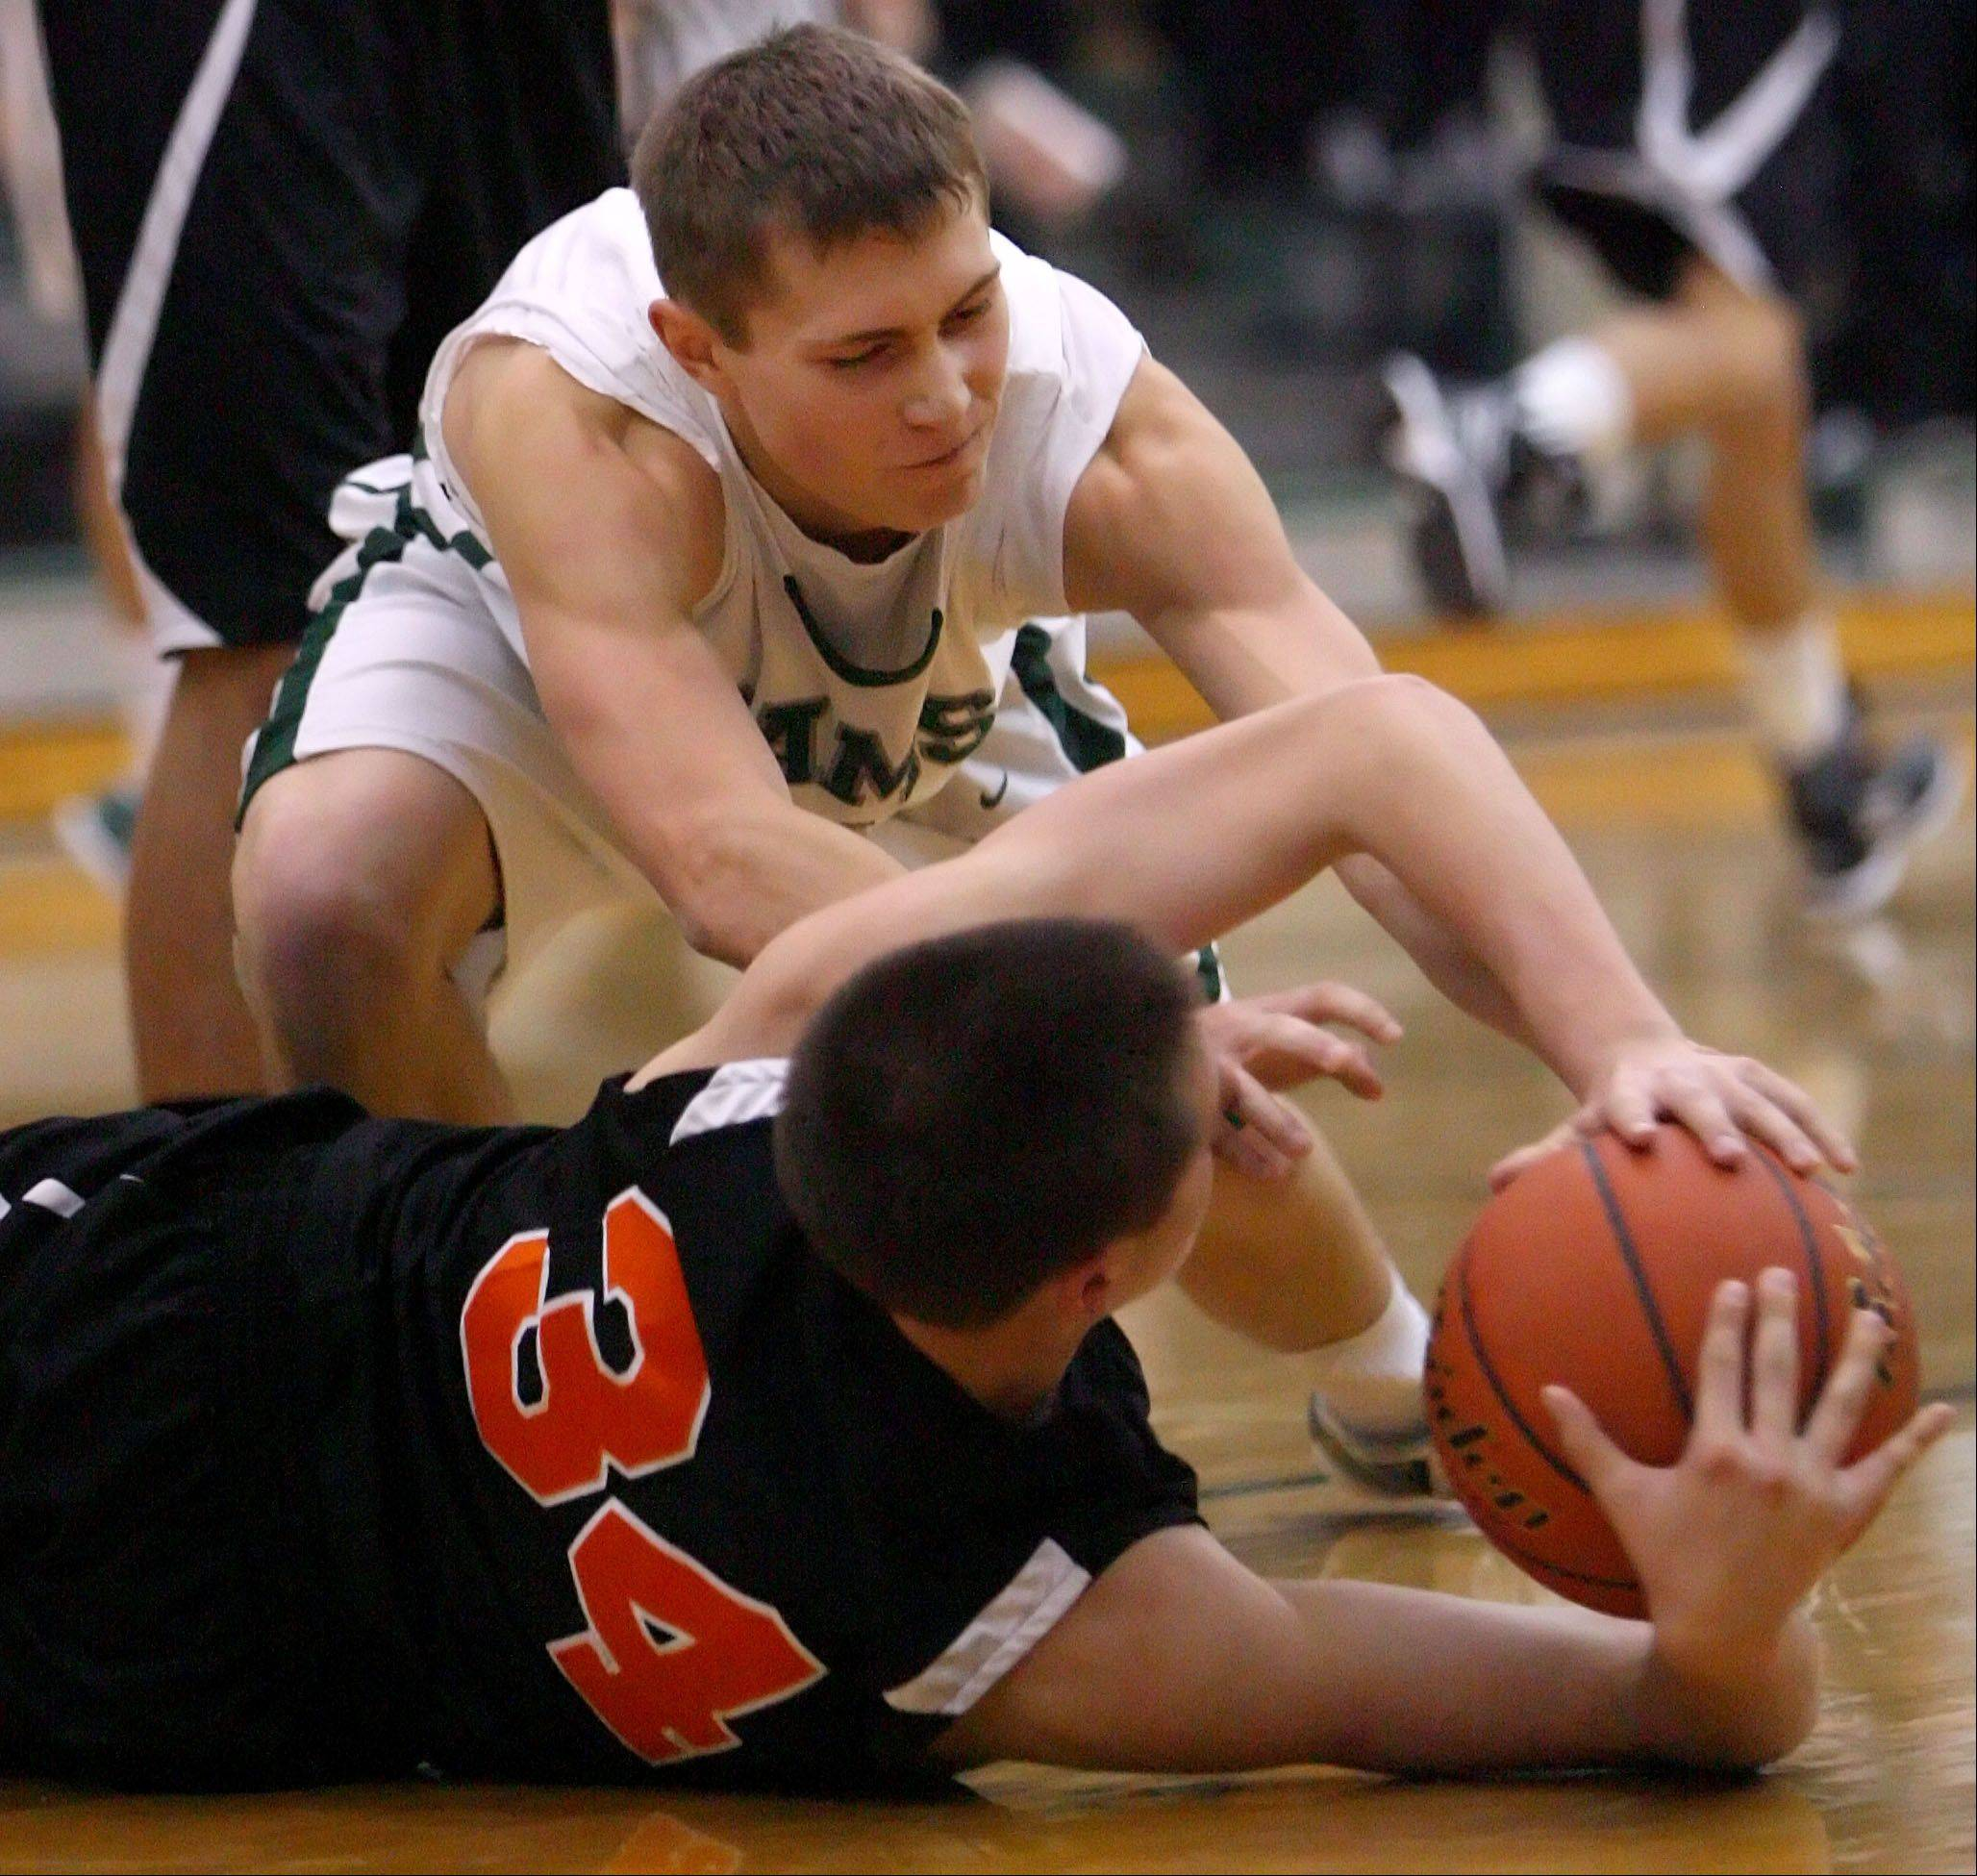 Grayslake Central's Sean Geary and Crystal Lake Central's Jake Vanscoyoc battle for a loose ball.